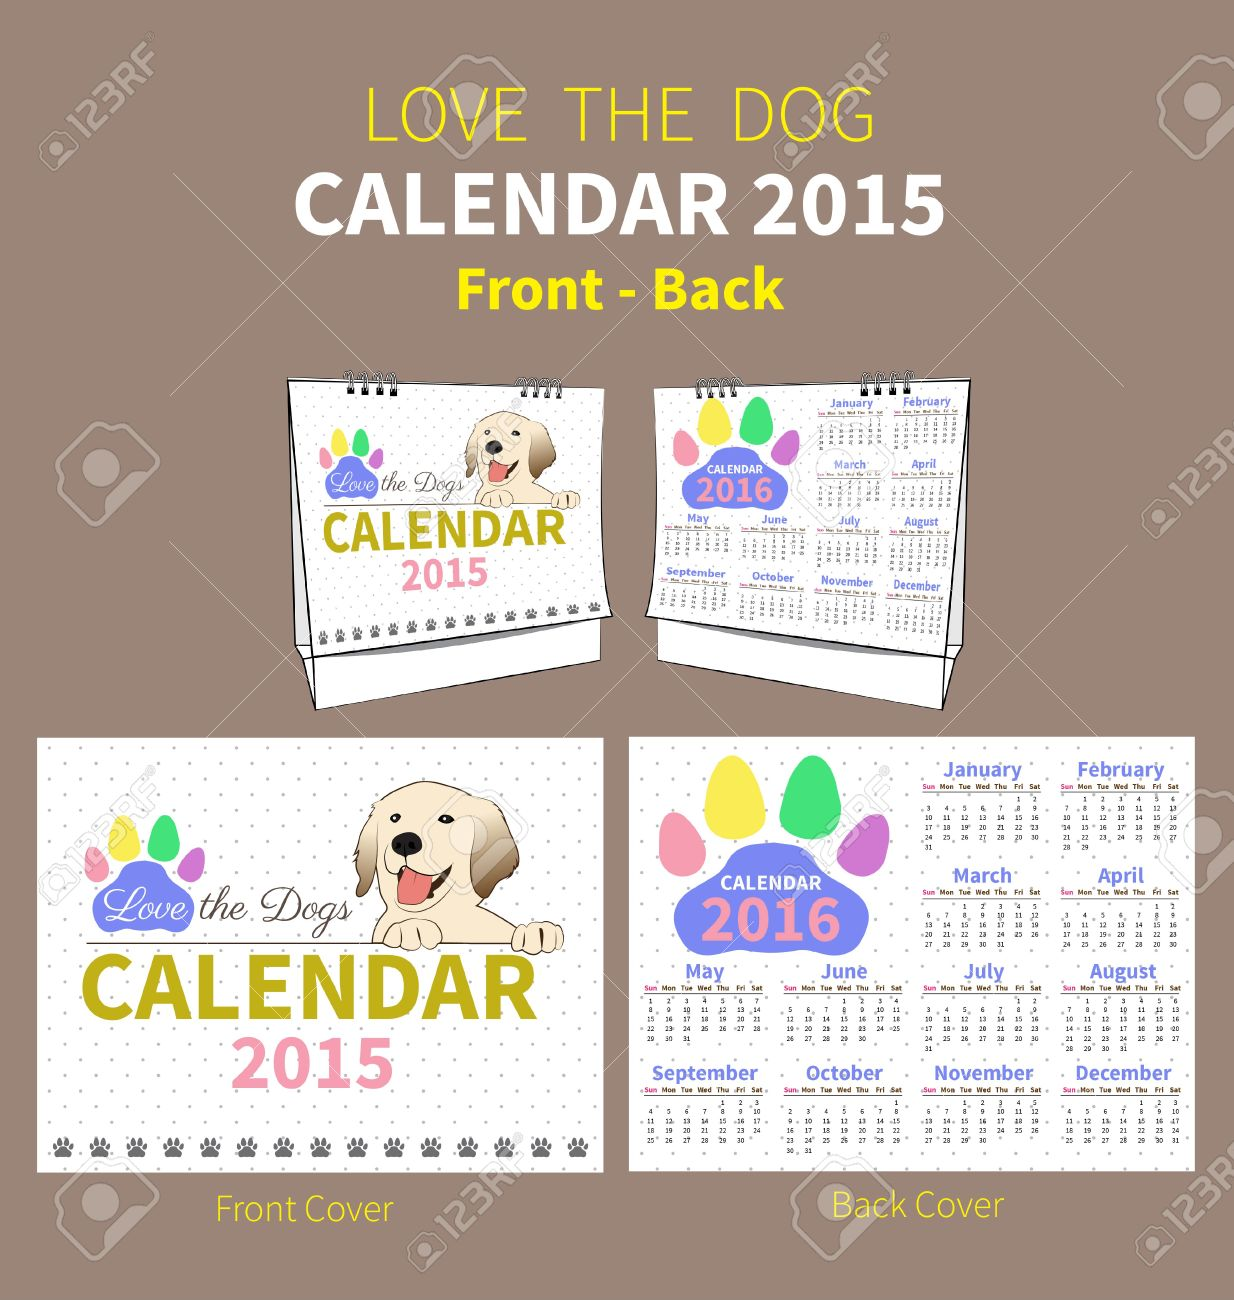 Calendar 2015 To 2016 Front And Back Cover On Dot And White.